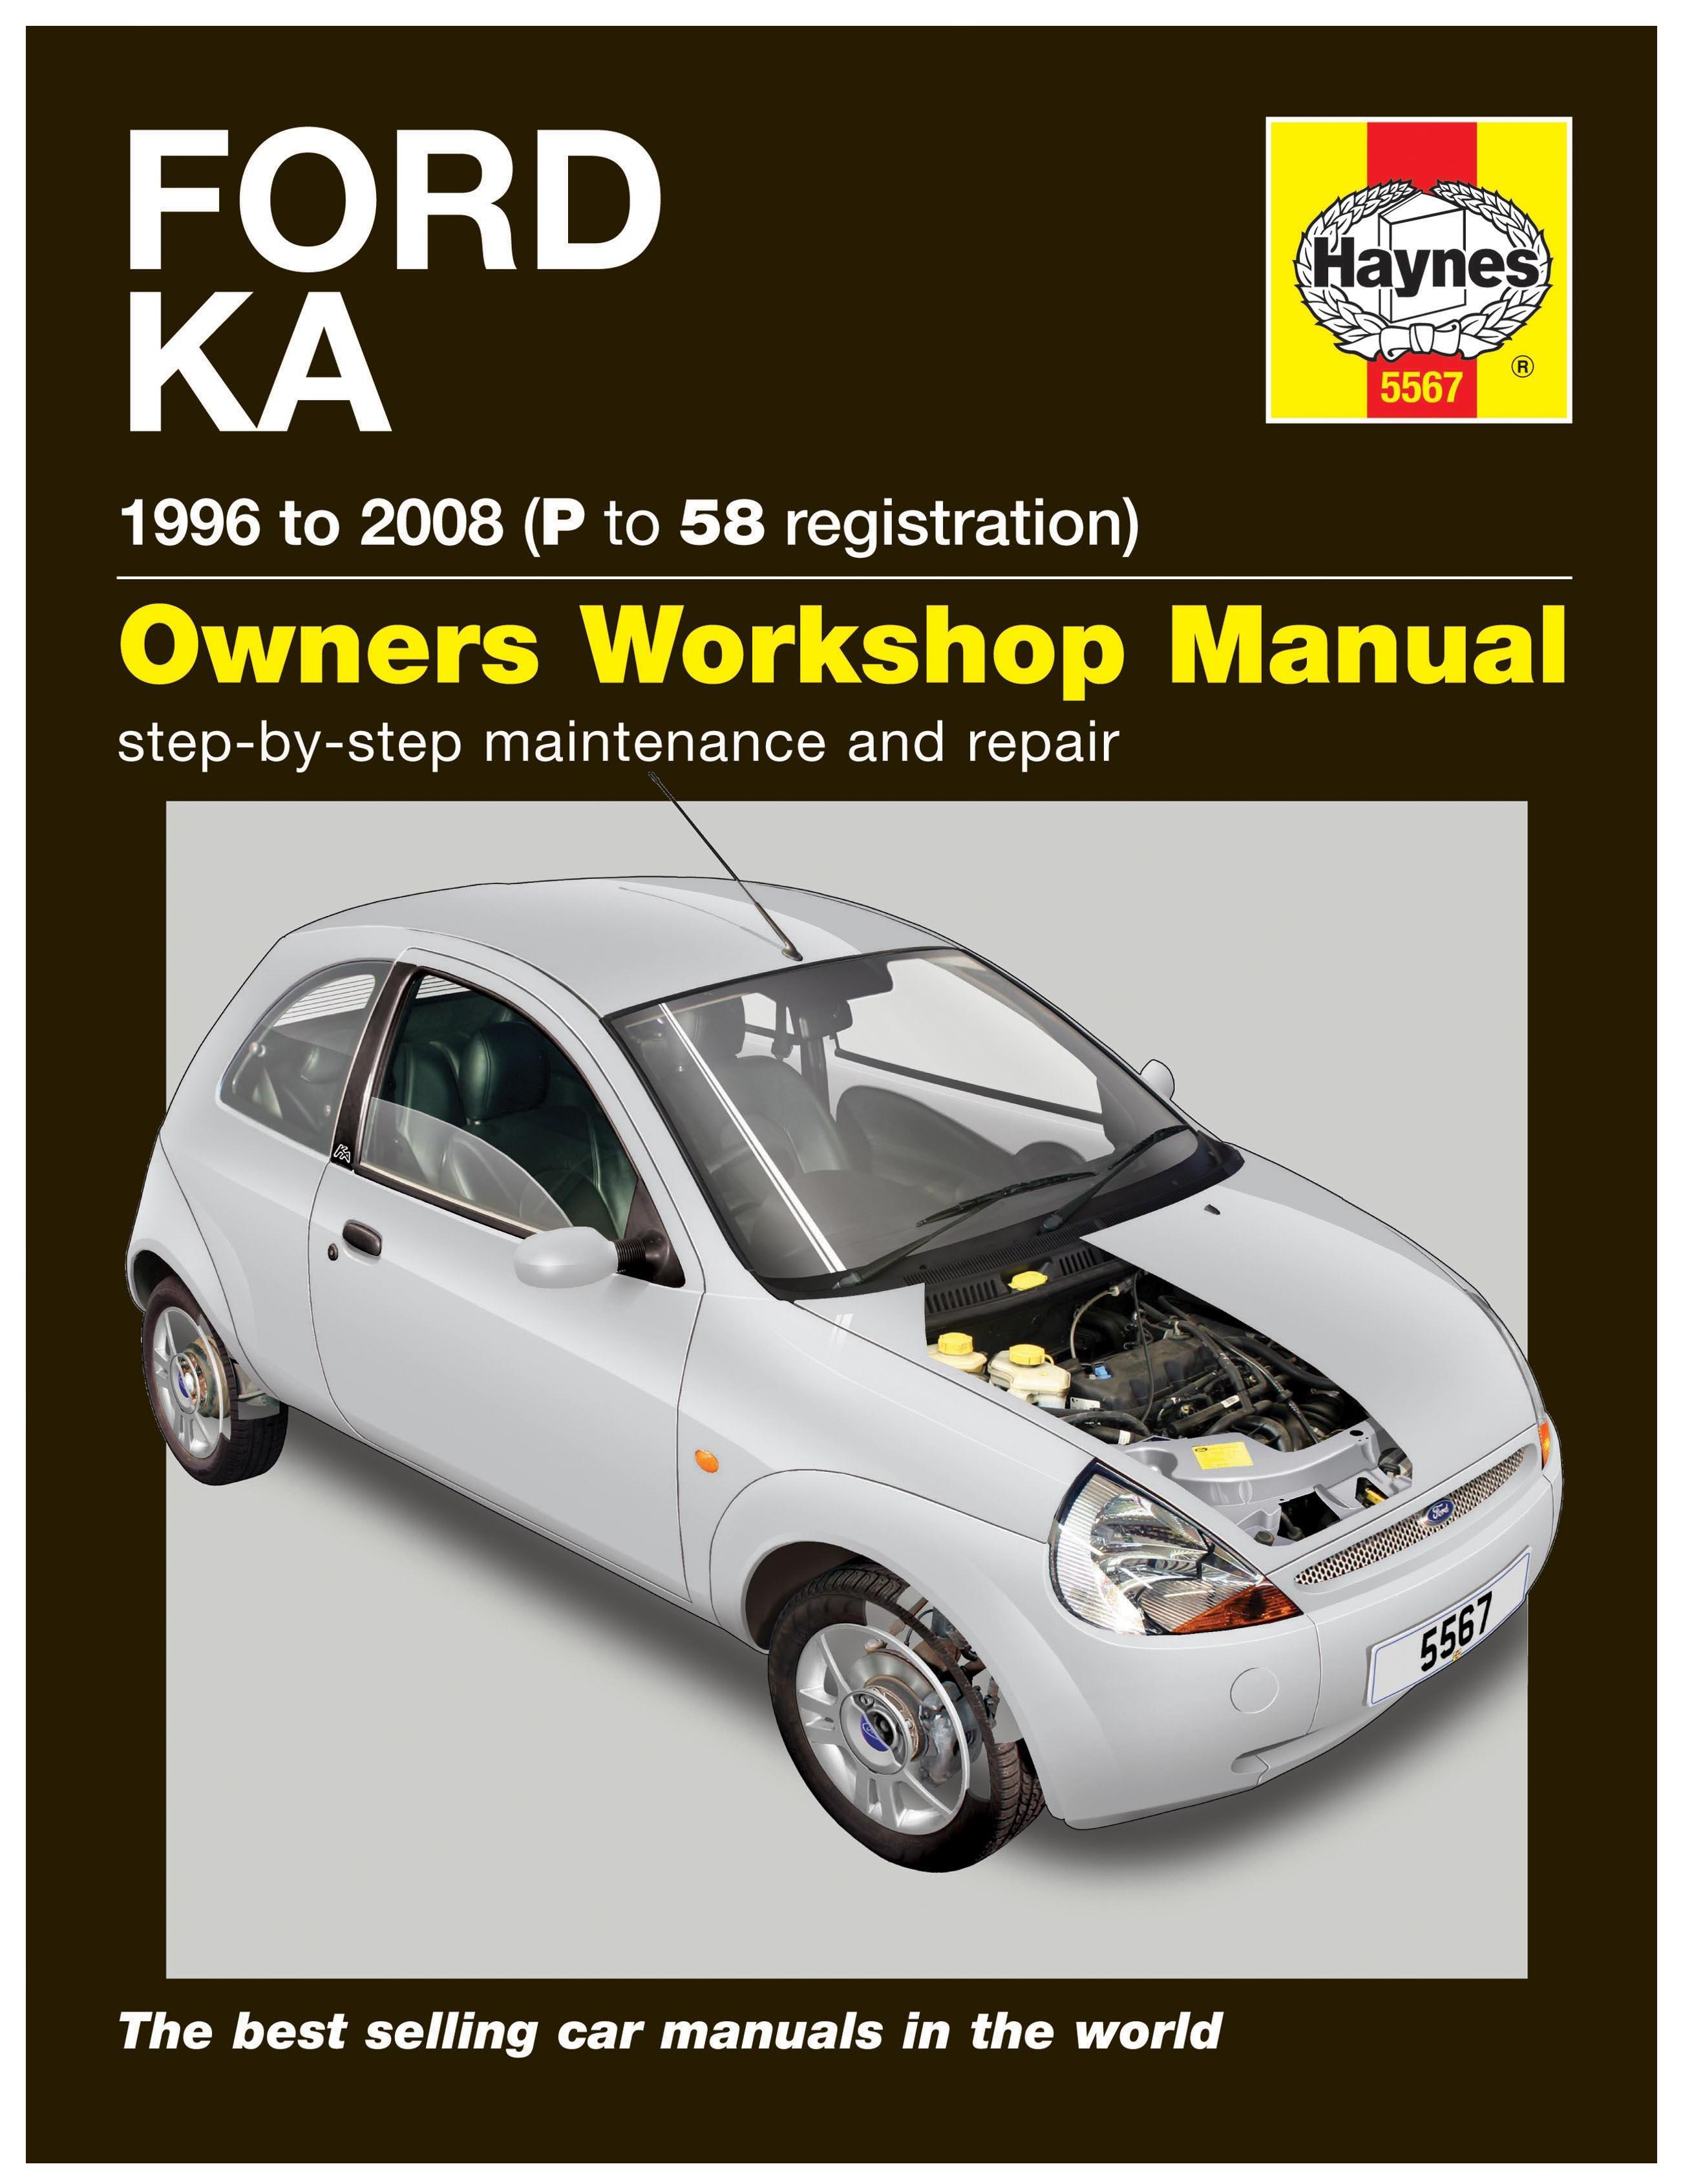 haynes ford ka 96 08 p to 58 re rh halfords com ford ka workshop manual online free ford fiesta workshop manual pdf